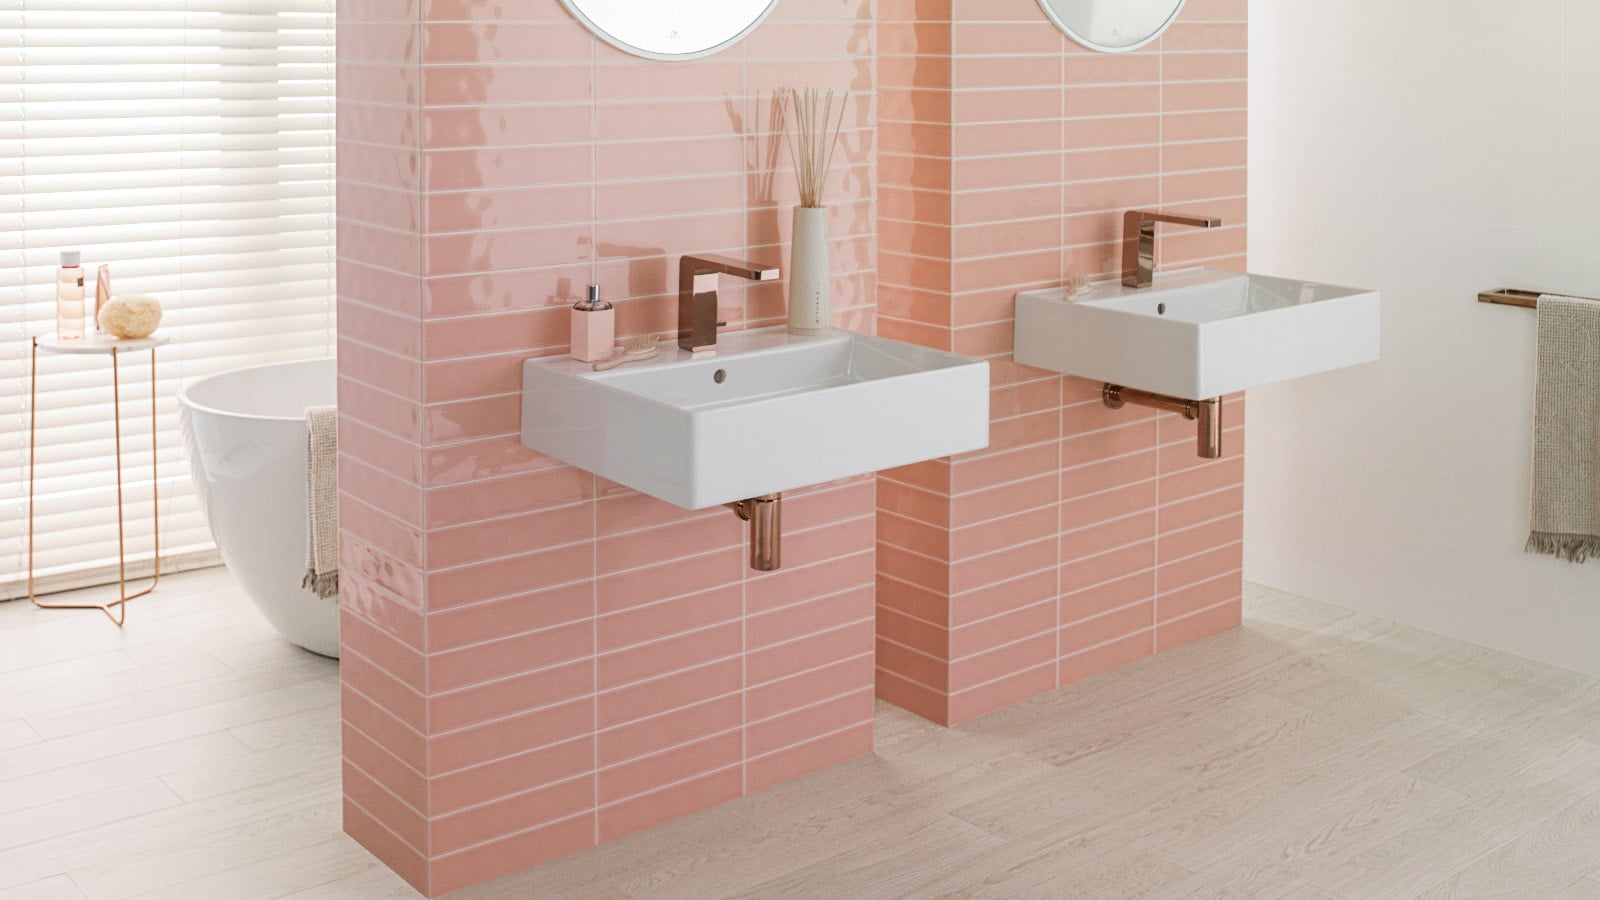 Powdery pink, the chromatic revolution of new architecture